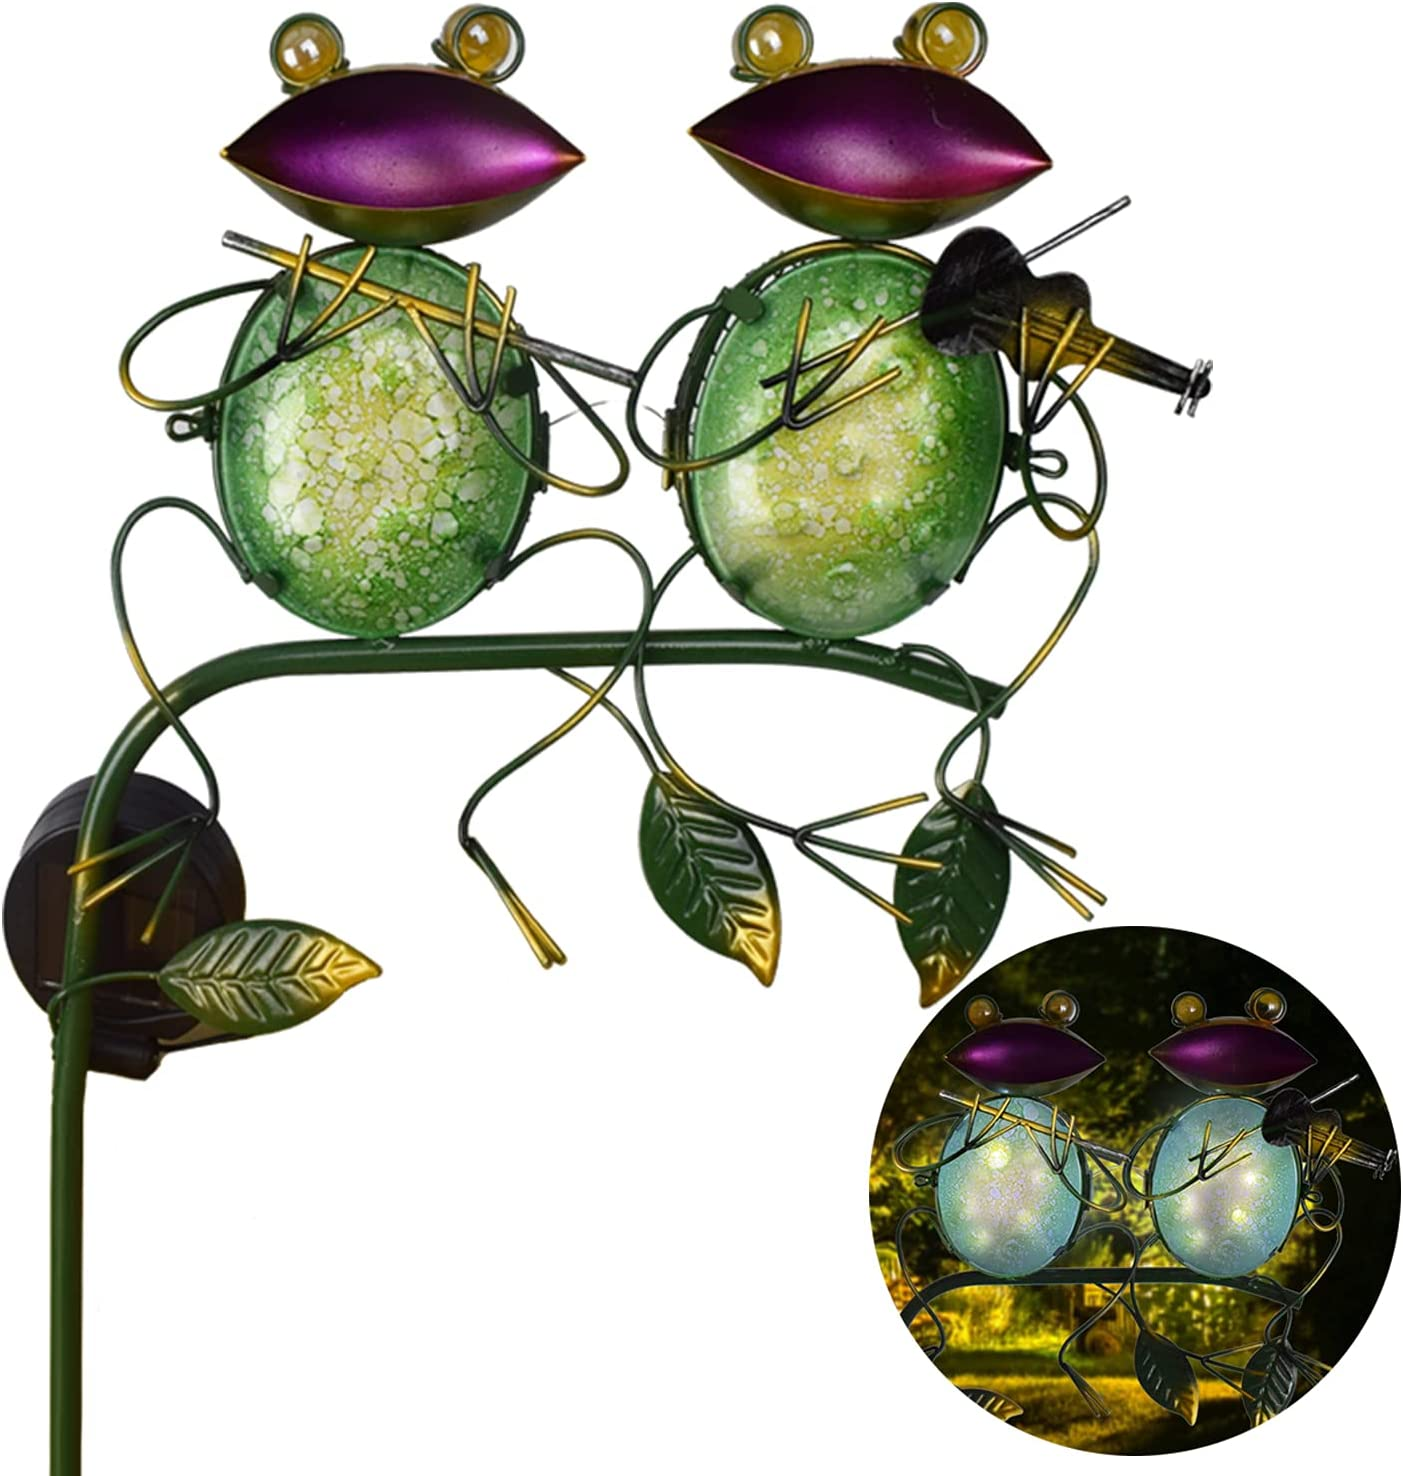 DREAMSOUL Metal Sitting Frog Garden Light Topics on TV Solar with Classic Decorations